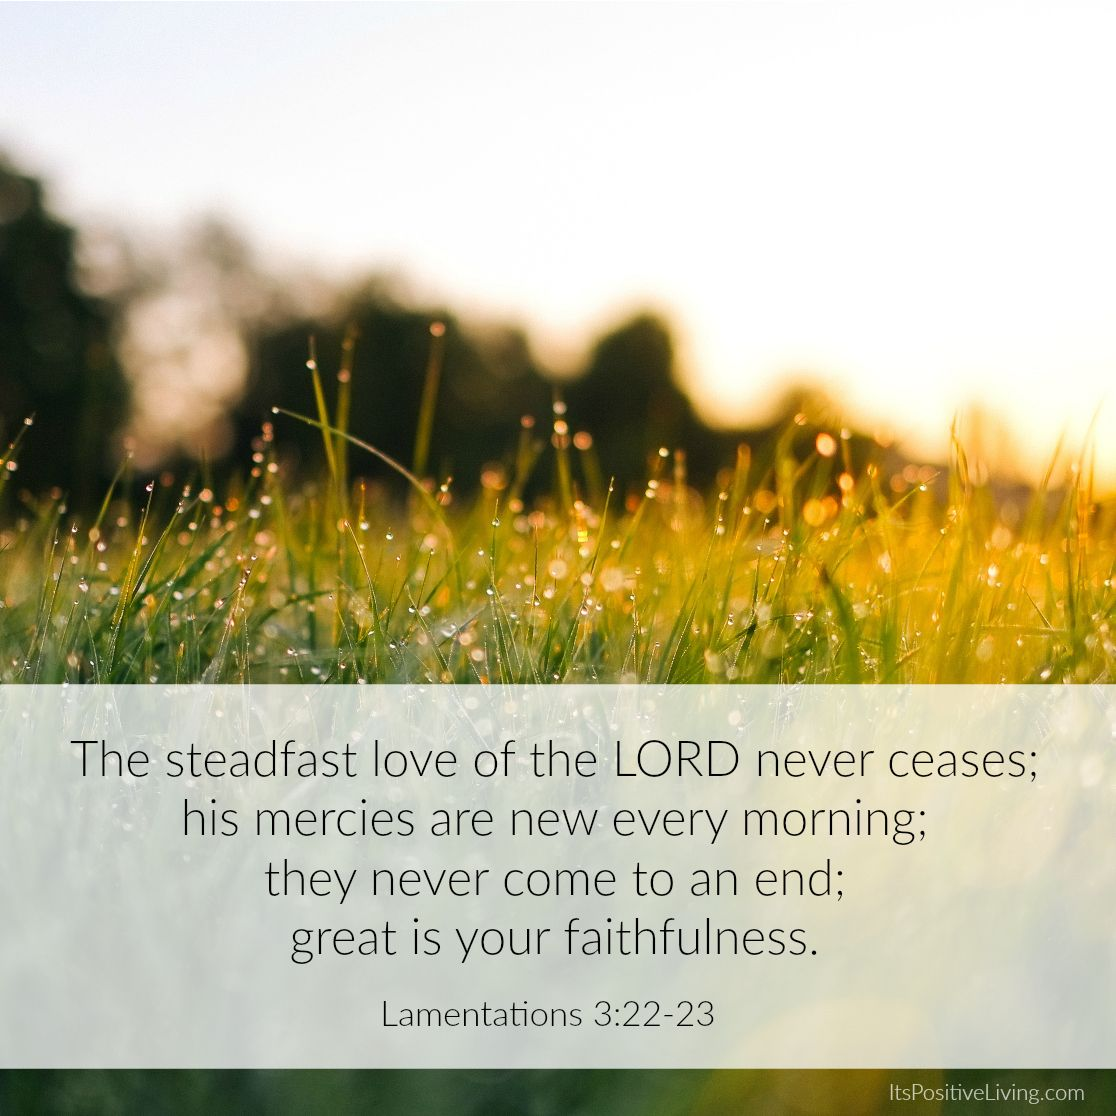 Lamentations 3 22 23 the steadfast love of the lord never ceases